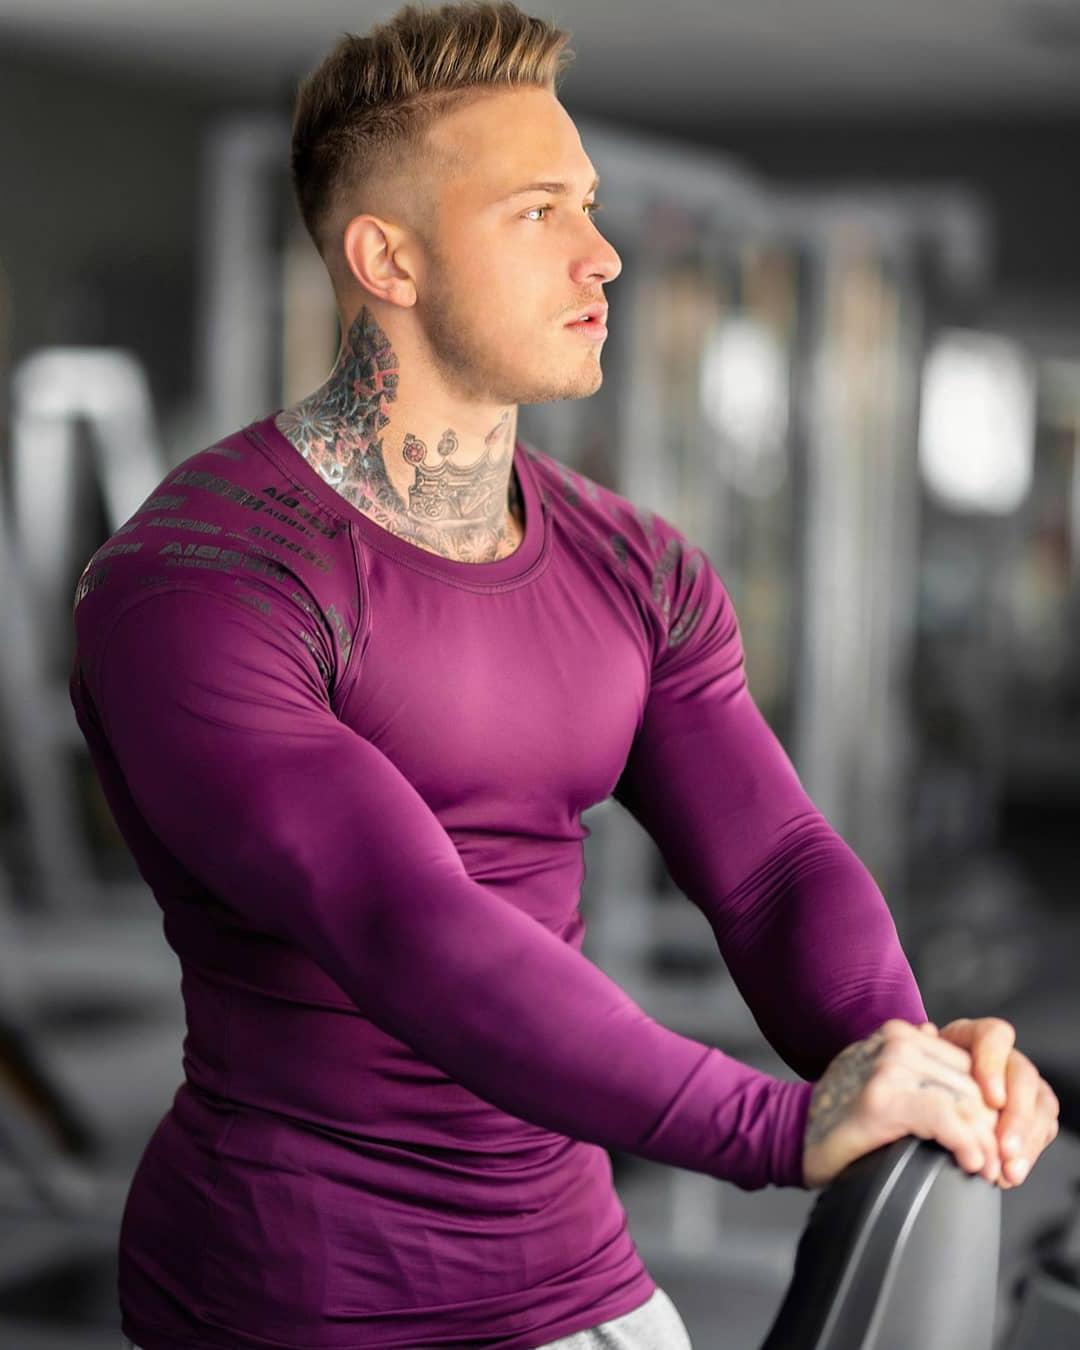 huge-muscle-clothes-gym-man-swole-body-neck-tattoo-hunk